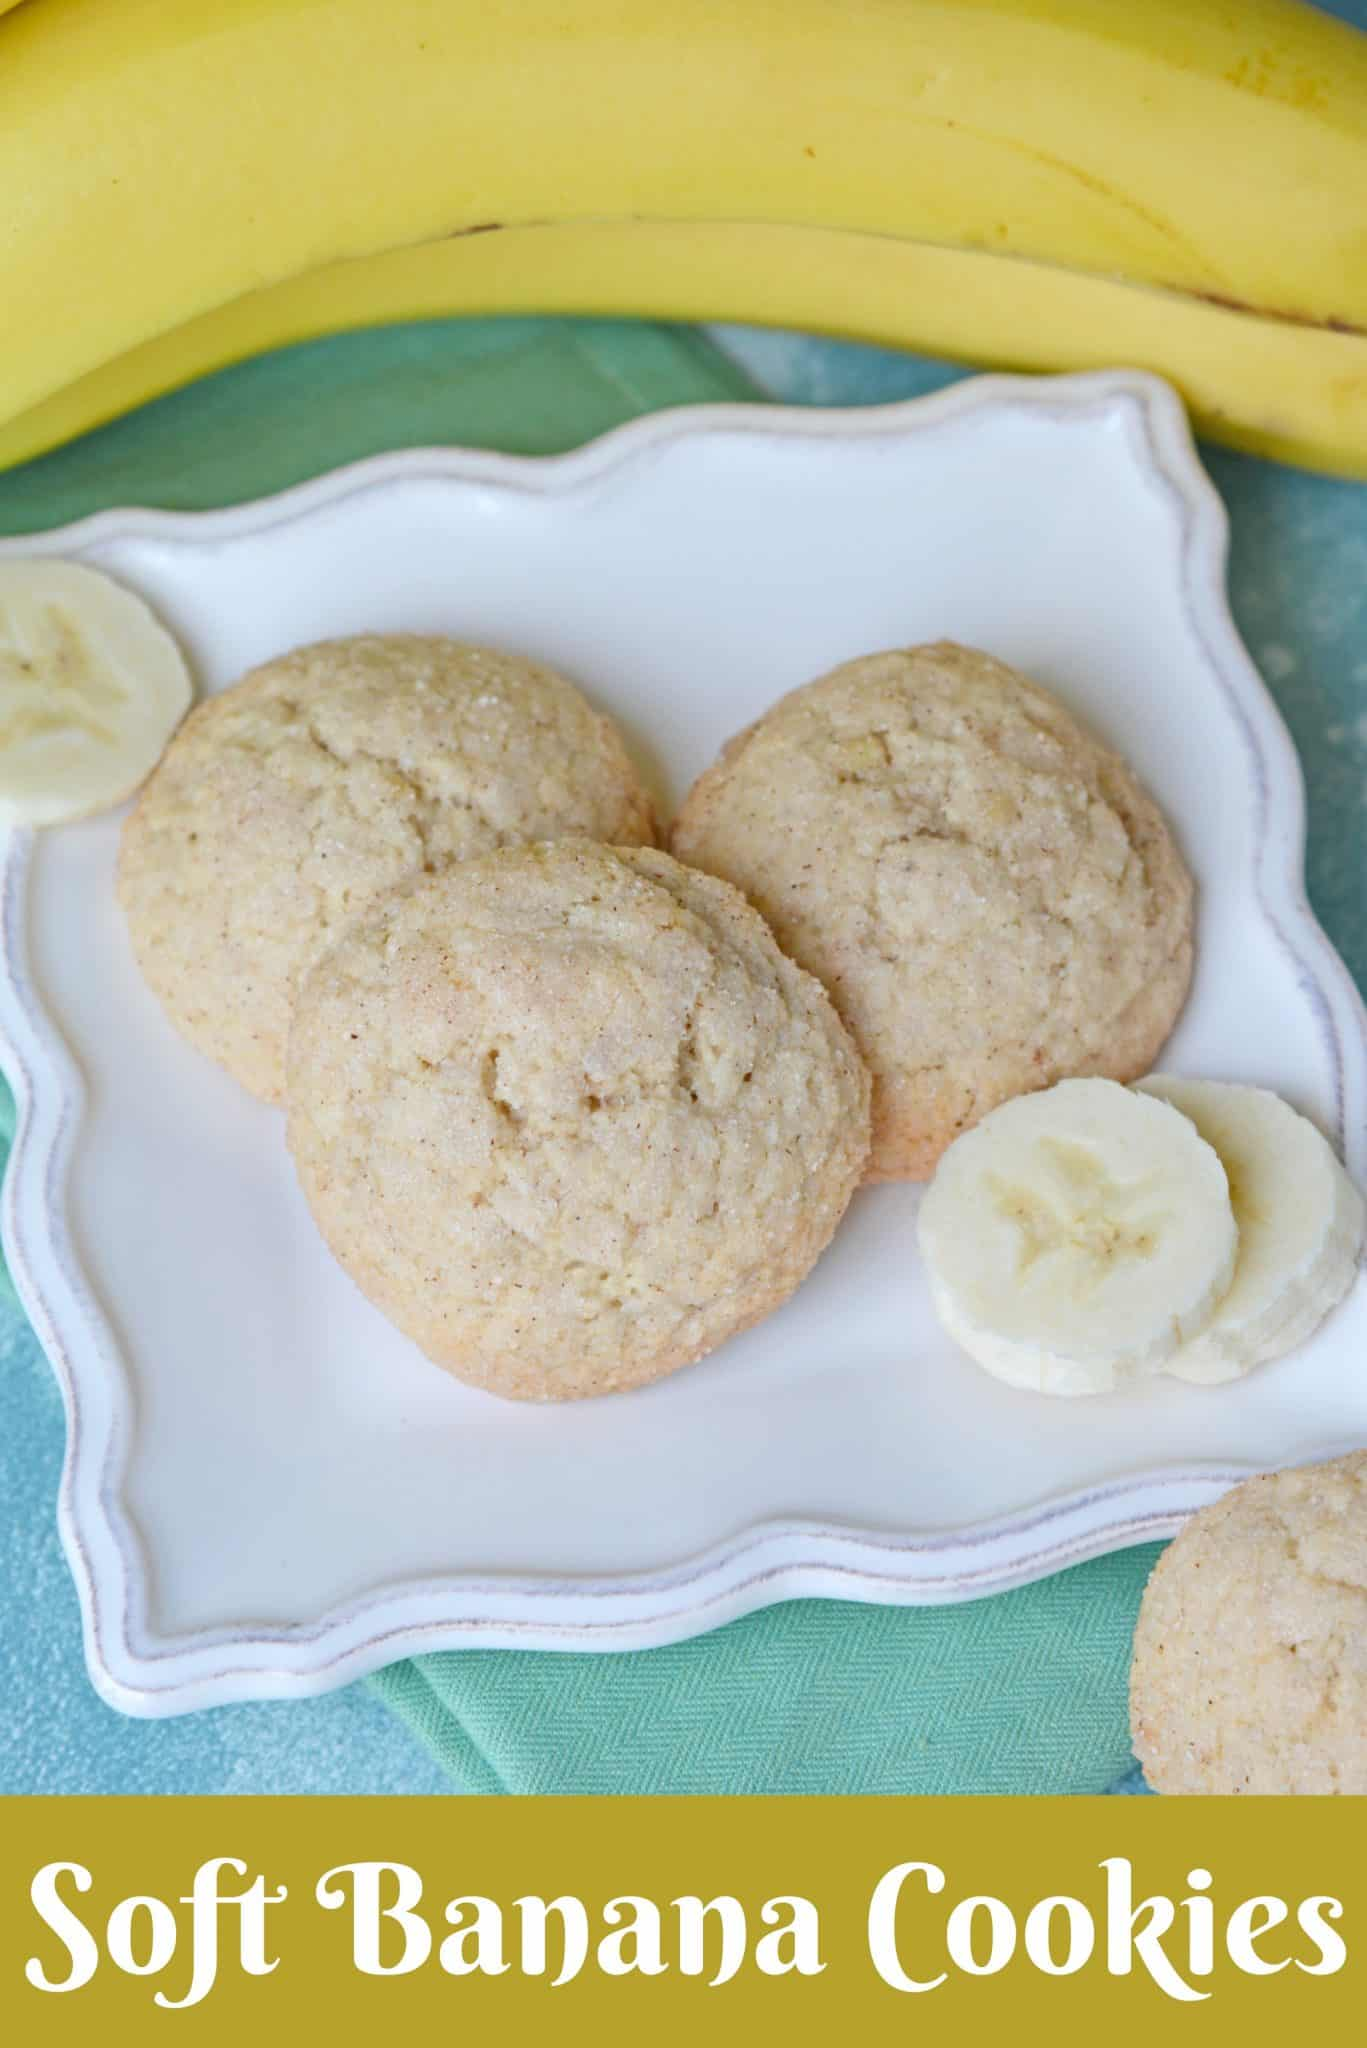 These Soft Banana Cookies will become your favorite thing to make with overripe bananas! They're soft, chewy and delicious - great with a glass of milk! #bananacookierecipe #bananacookies www.savoryexperiments.com